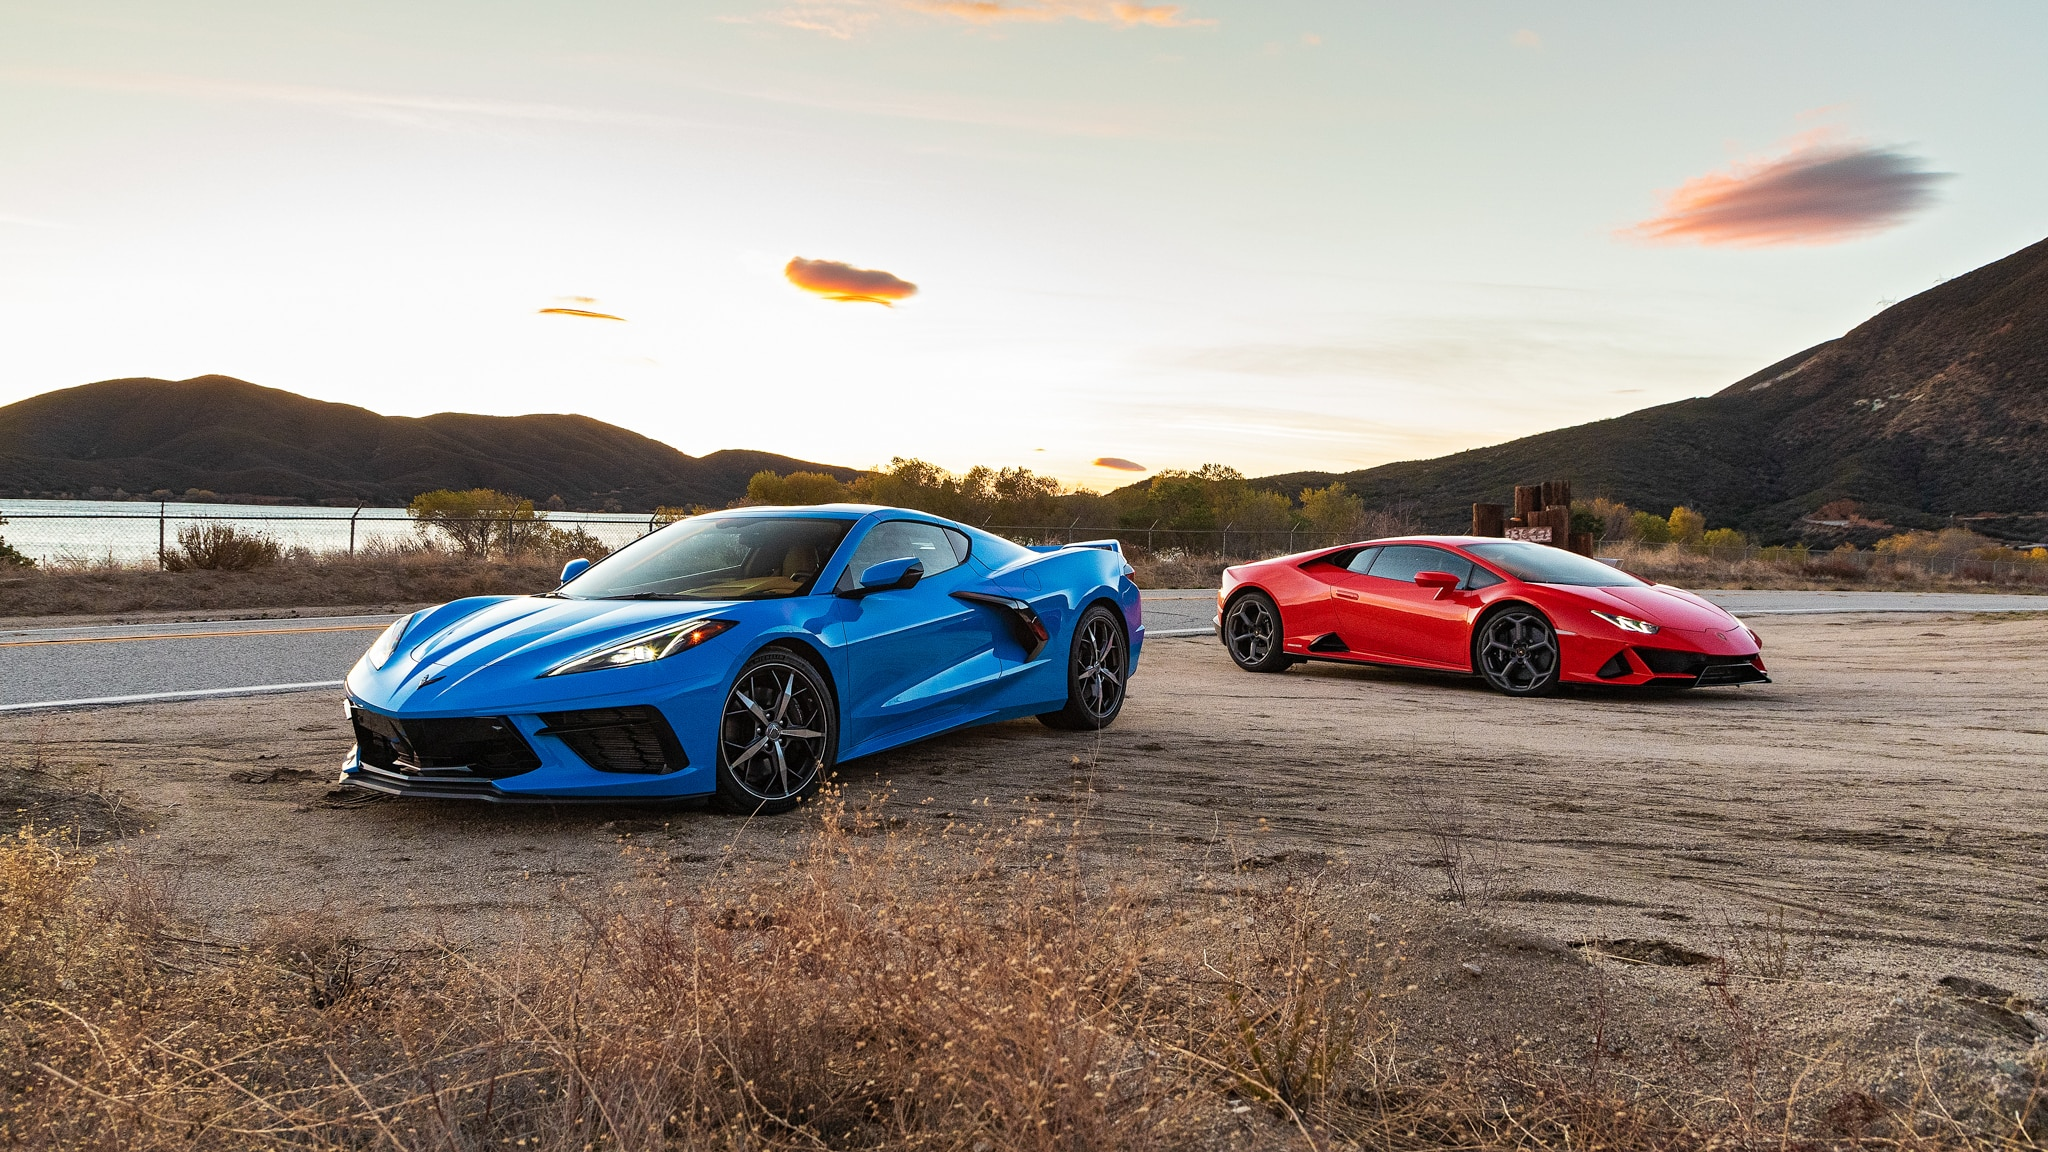 2020 Chevrolet Corvette C8 Versus Lamborghini Huracan Evo: Comparison Test Drive Review - Automobile Magazine